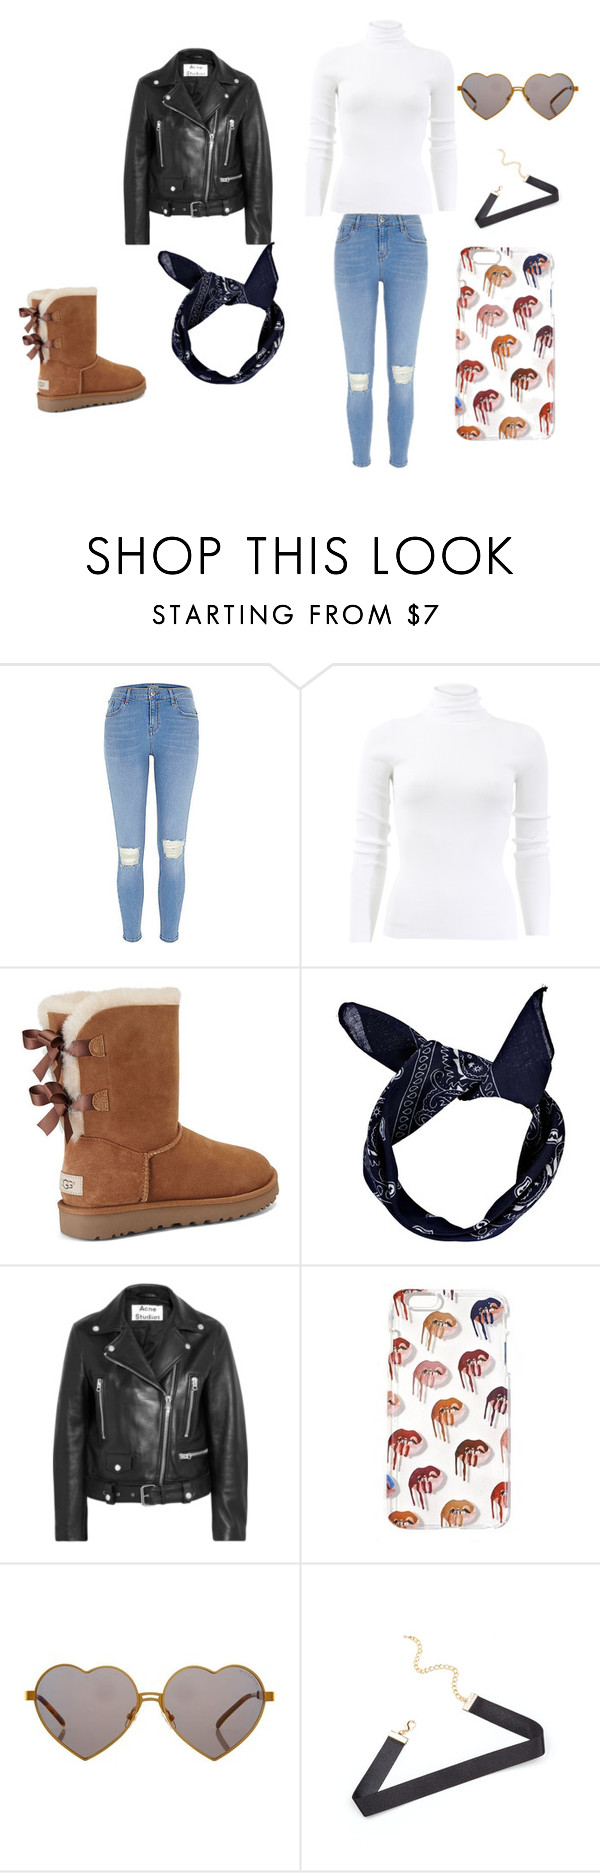 """""""Untitled #16"""" by lnorah7 on Polyvore featuring Michael Kors, UGG, Boohoo, Acne Studios and Wildfox"""